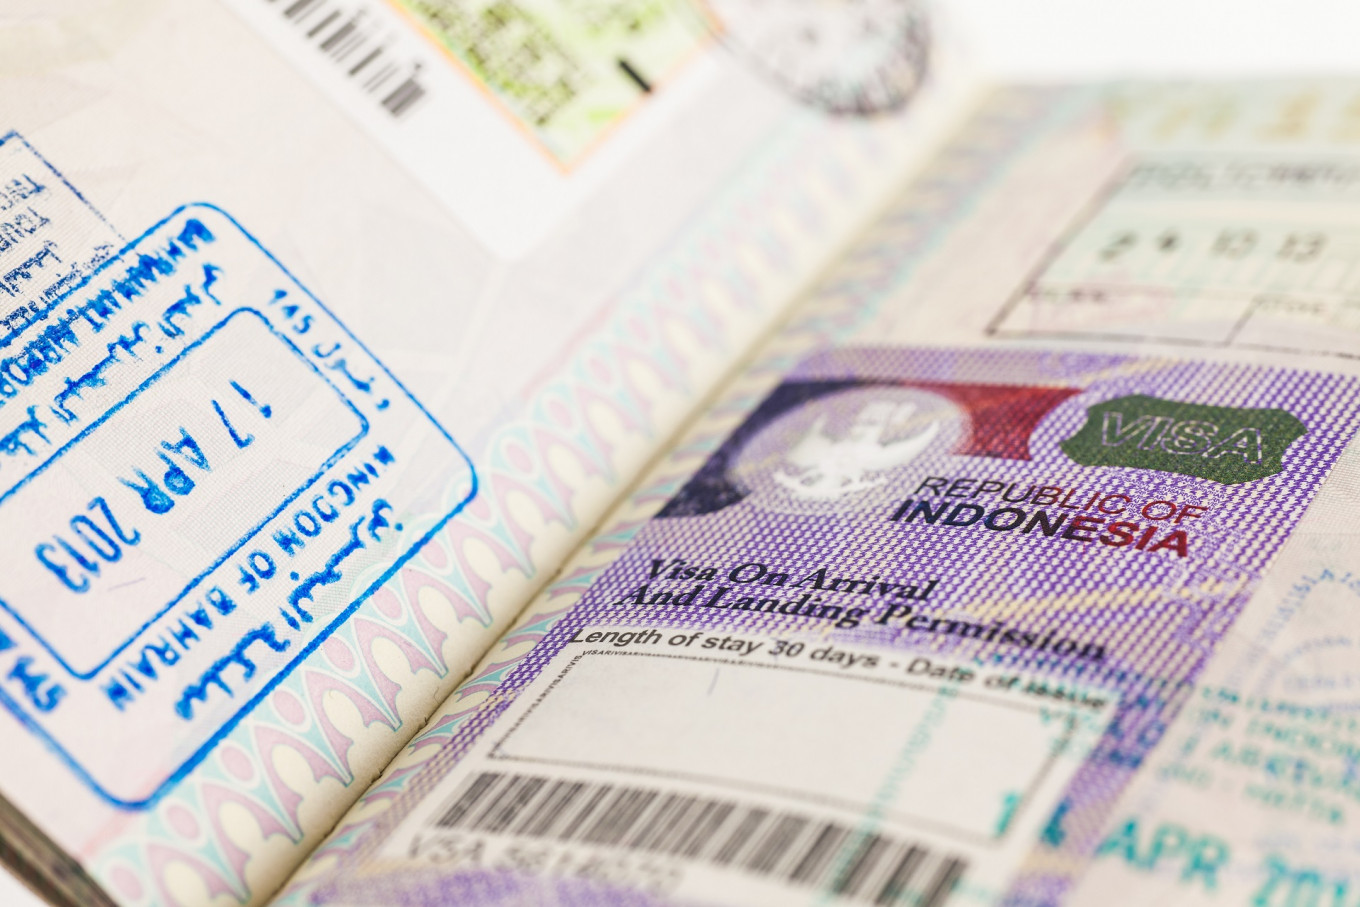 Indonesia launches e-visa for foreign visitors